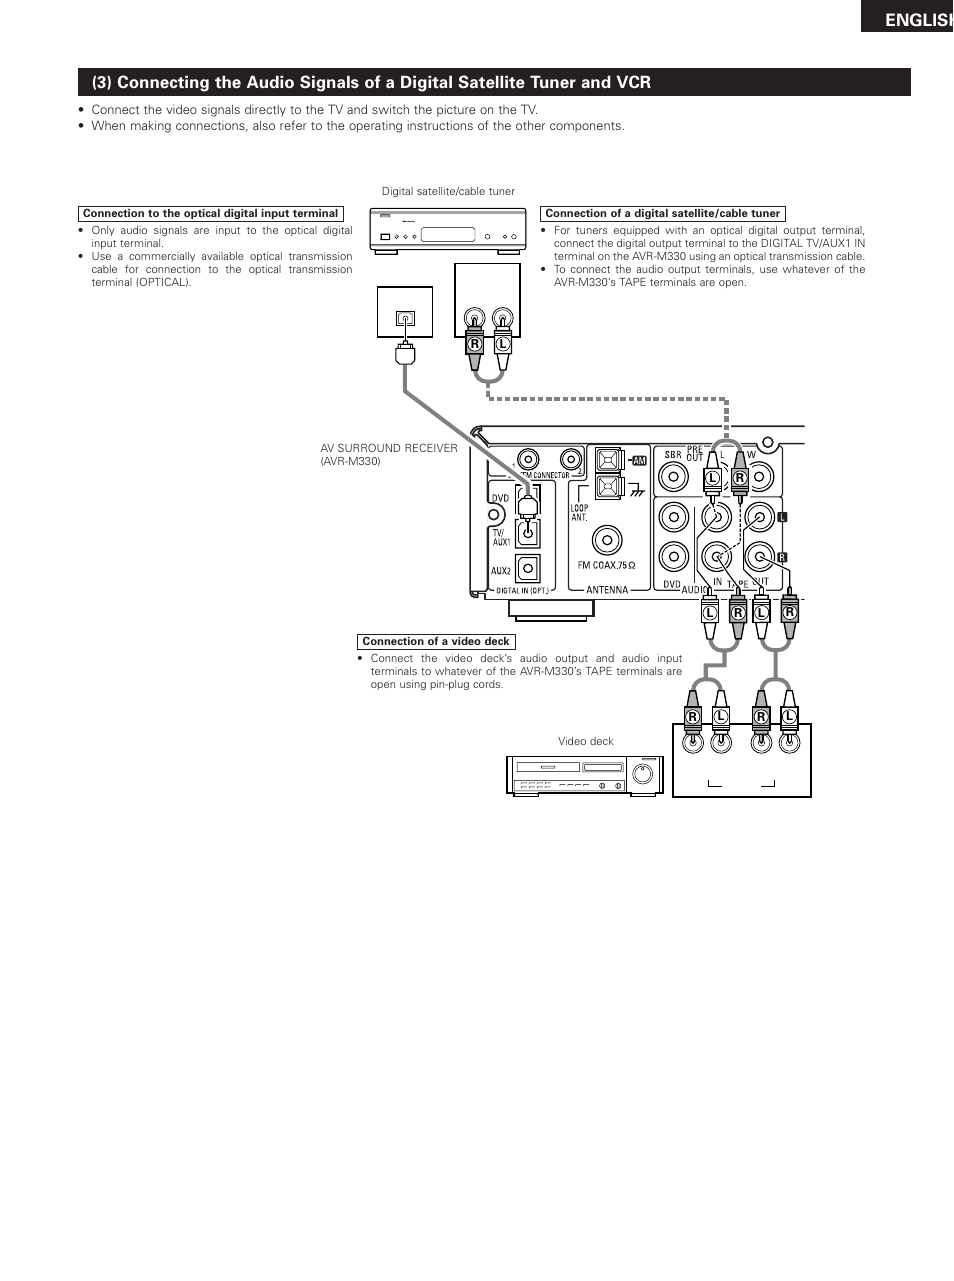 English | Denon DHT-M330DV User Manual | Page 11 / 60